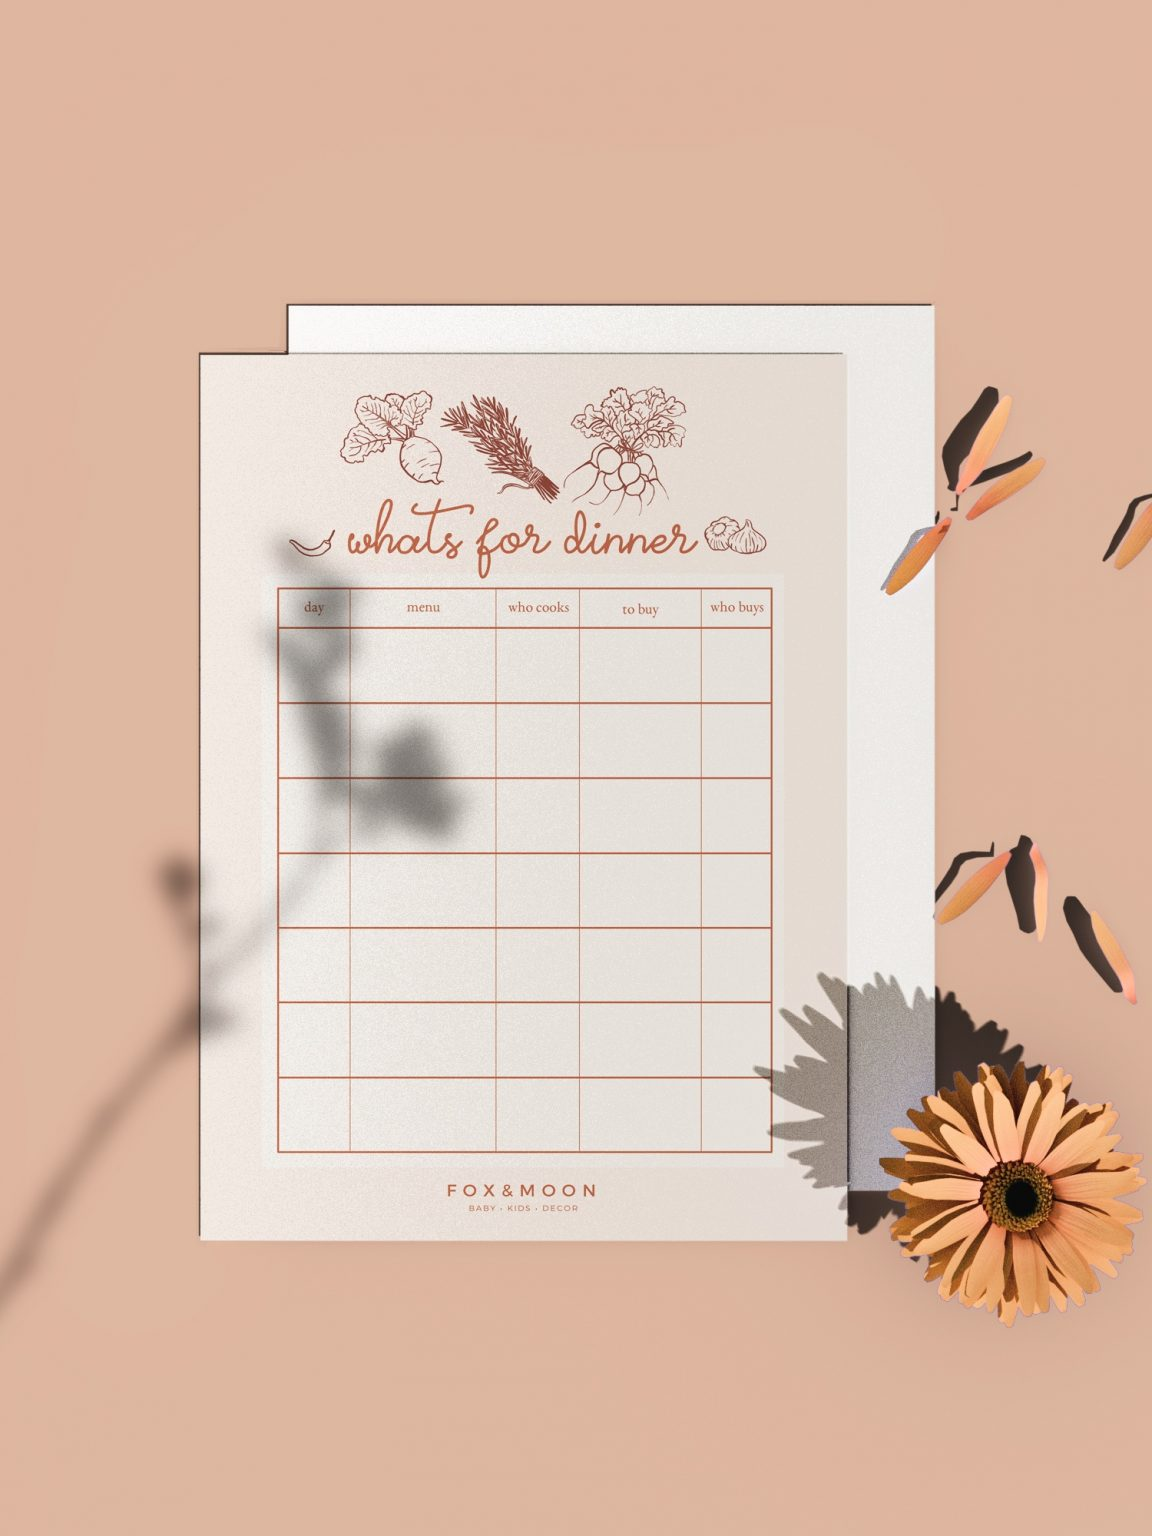 Oh Hey Cindy - Whats for dinner - Free Printable